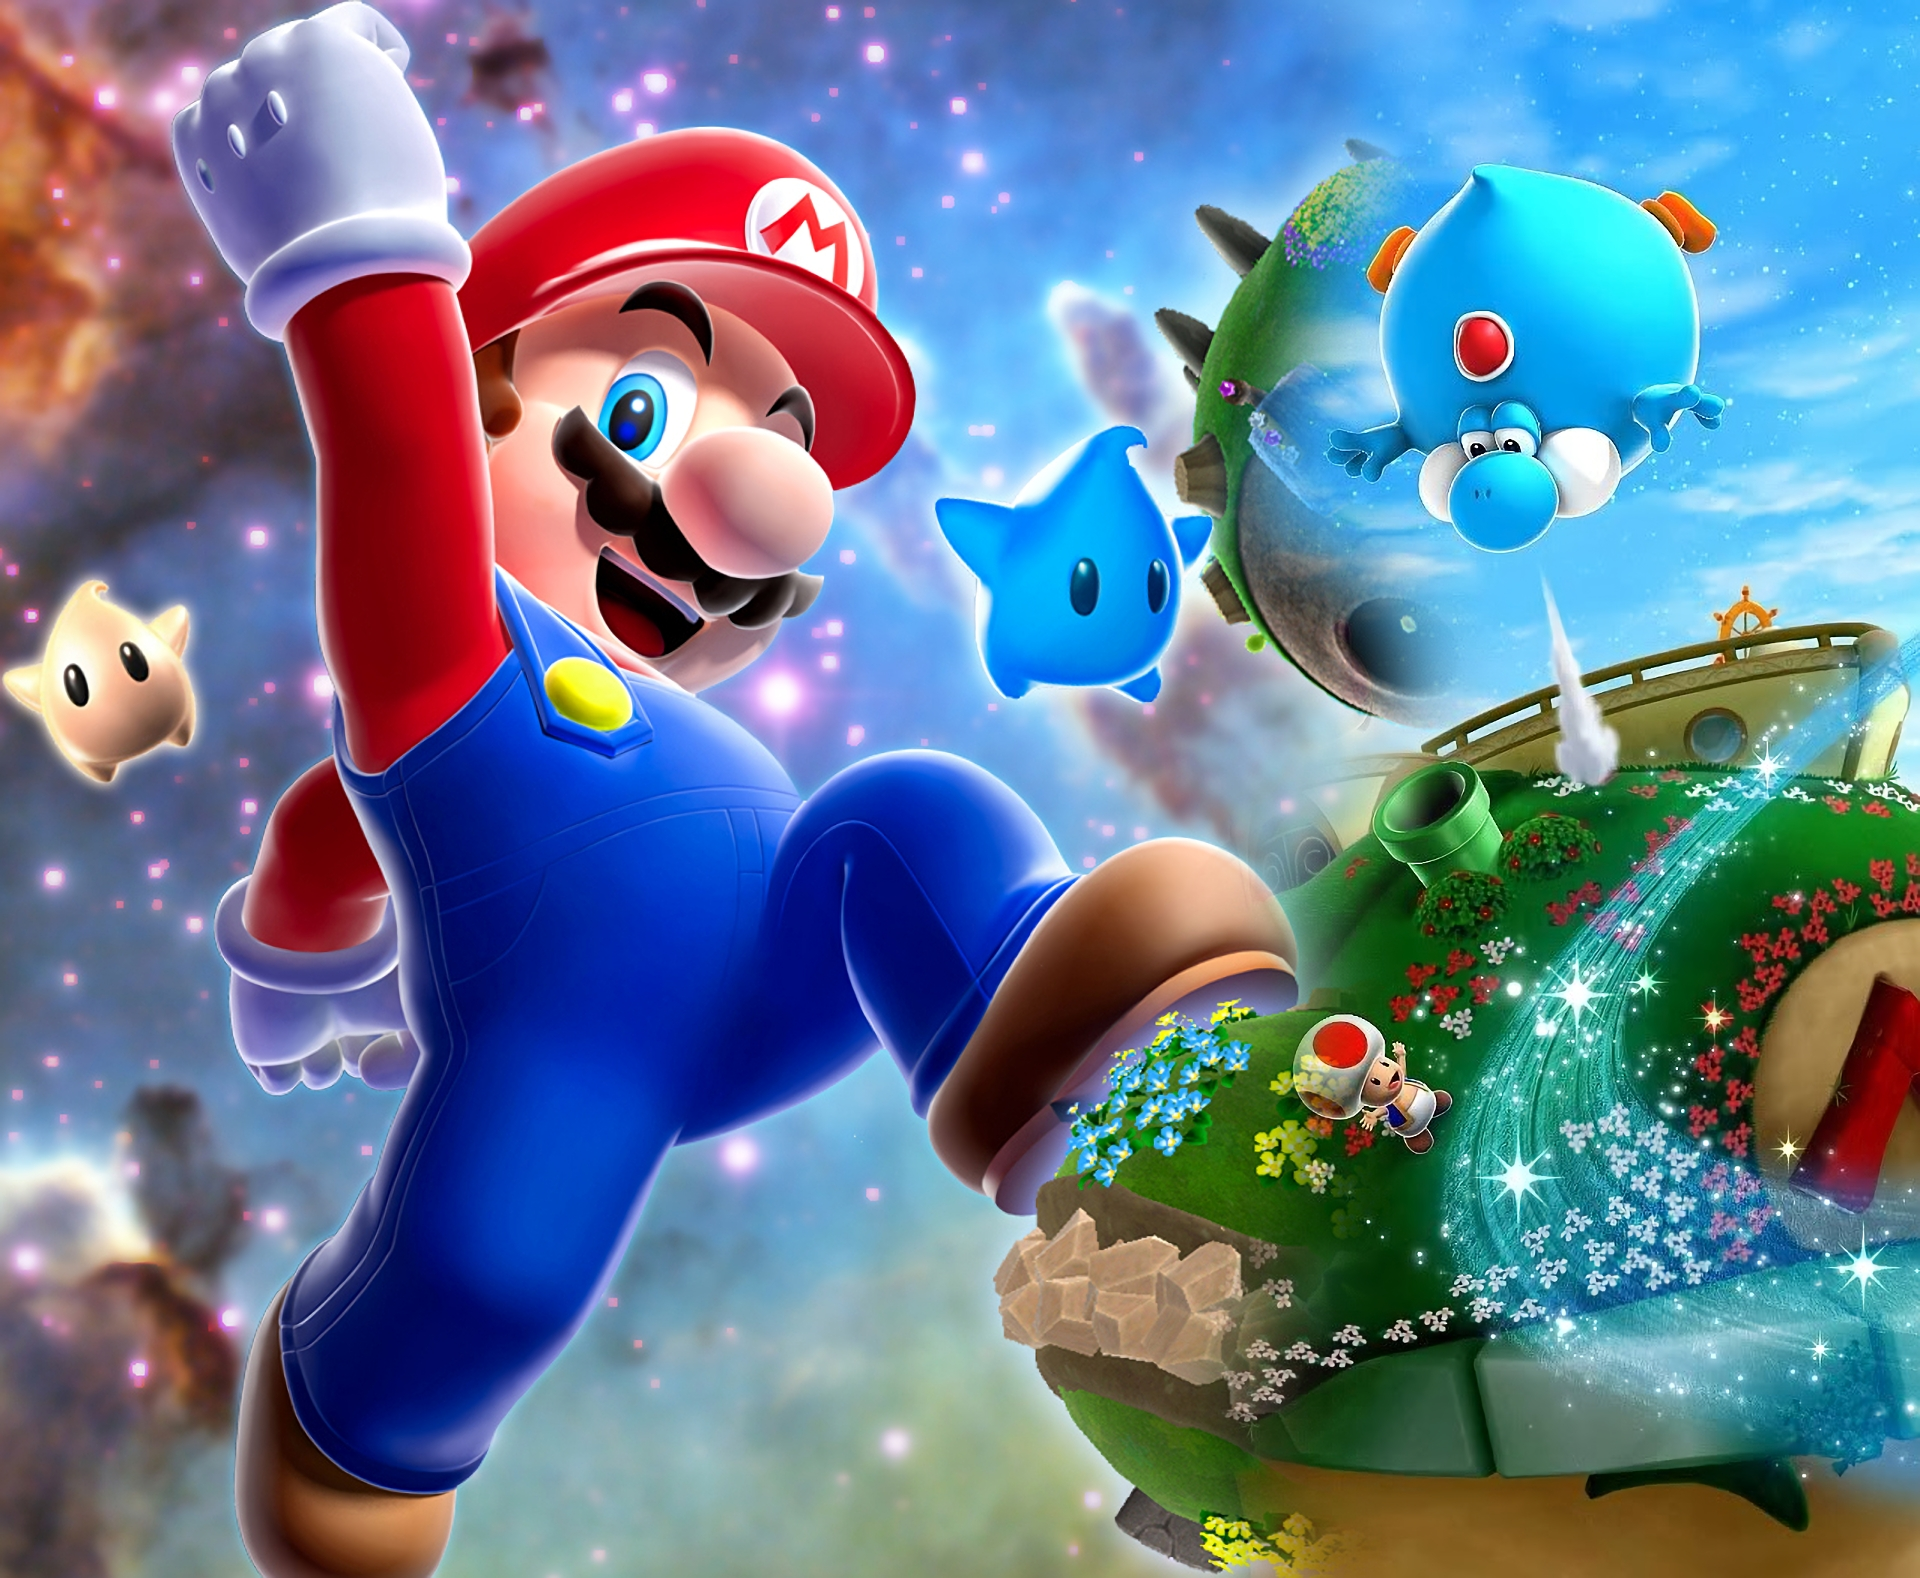 18 super mario galaxy 2 fonds d'écran hd | arrière-plans - wallpaper